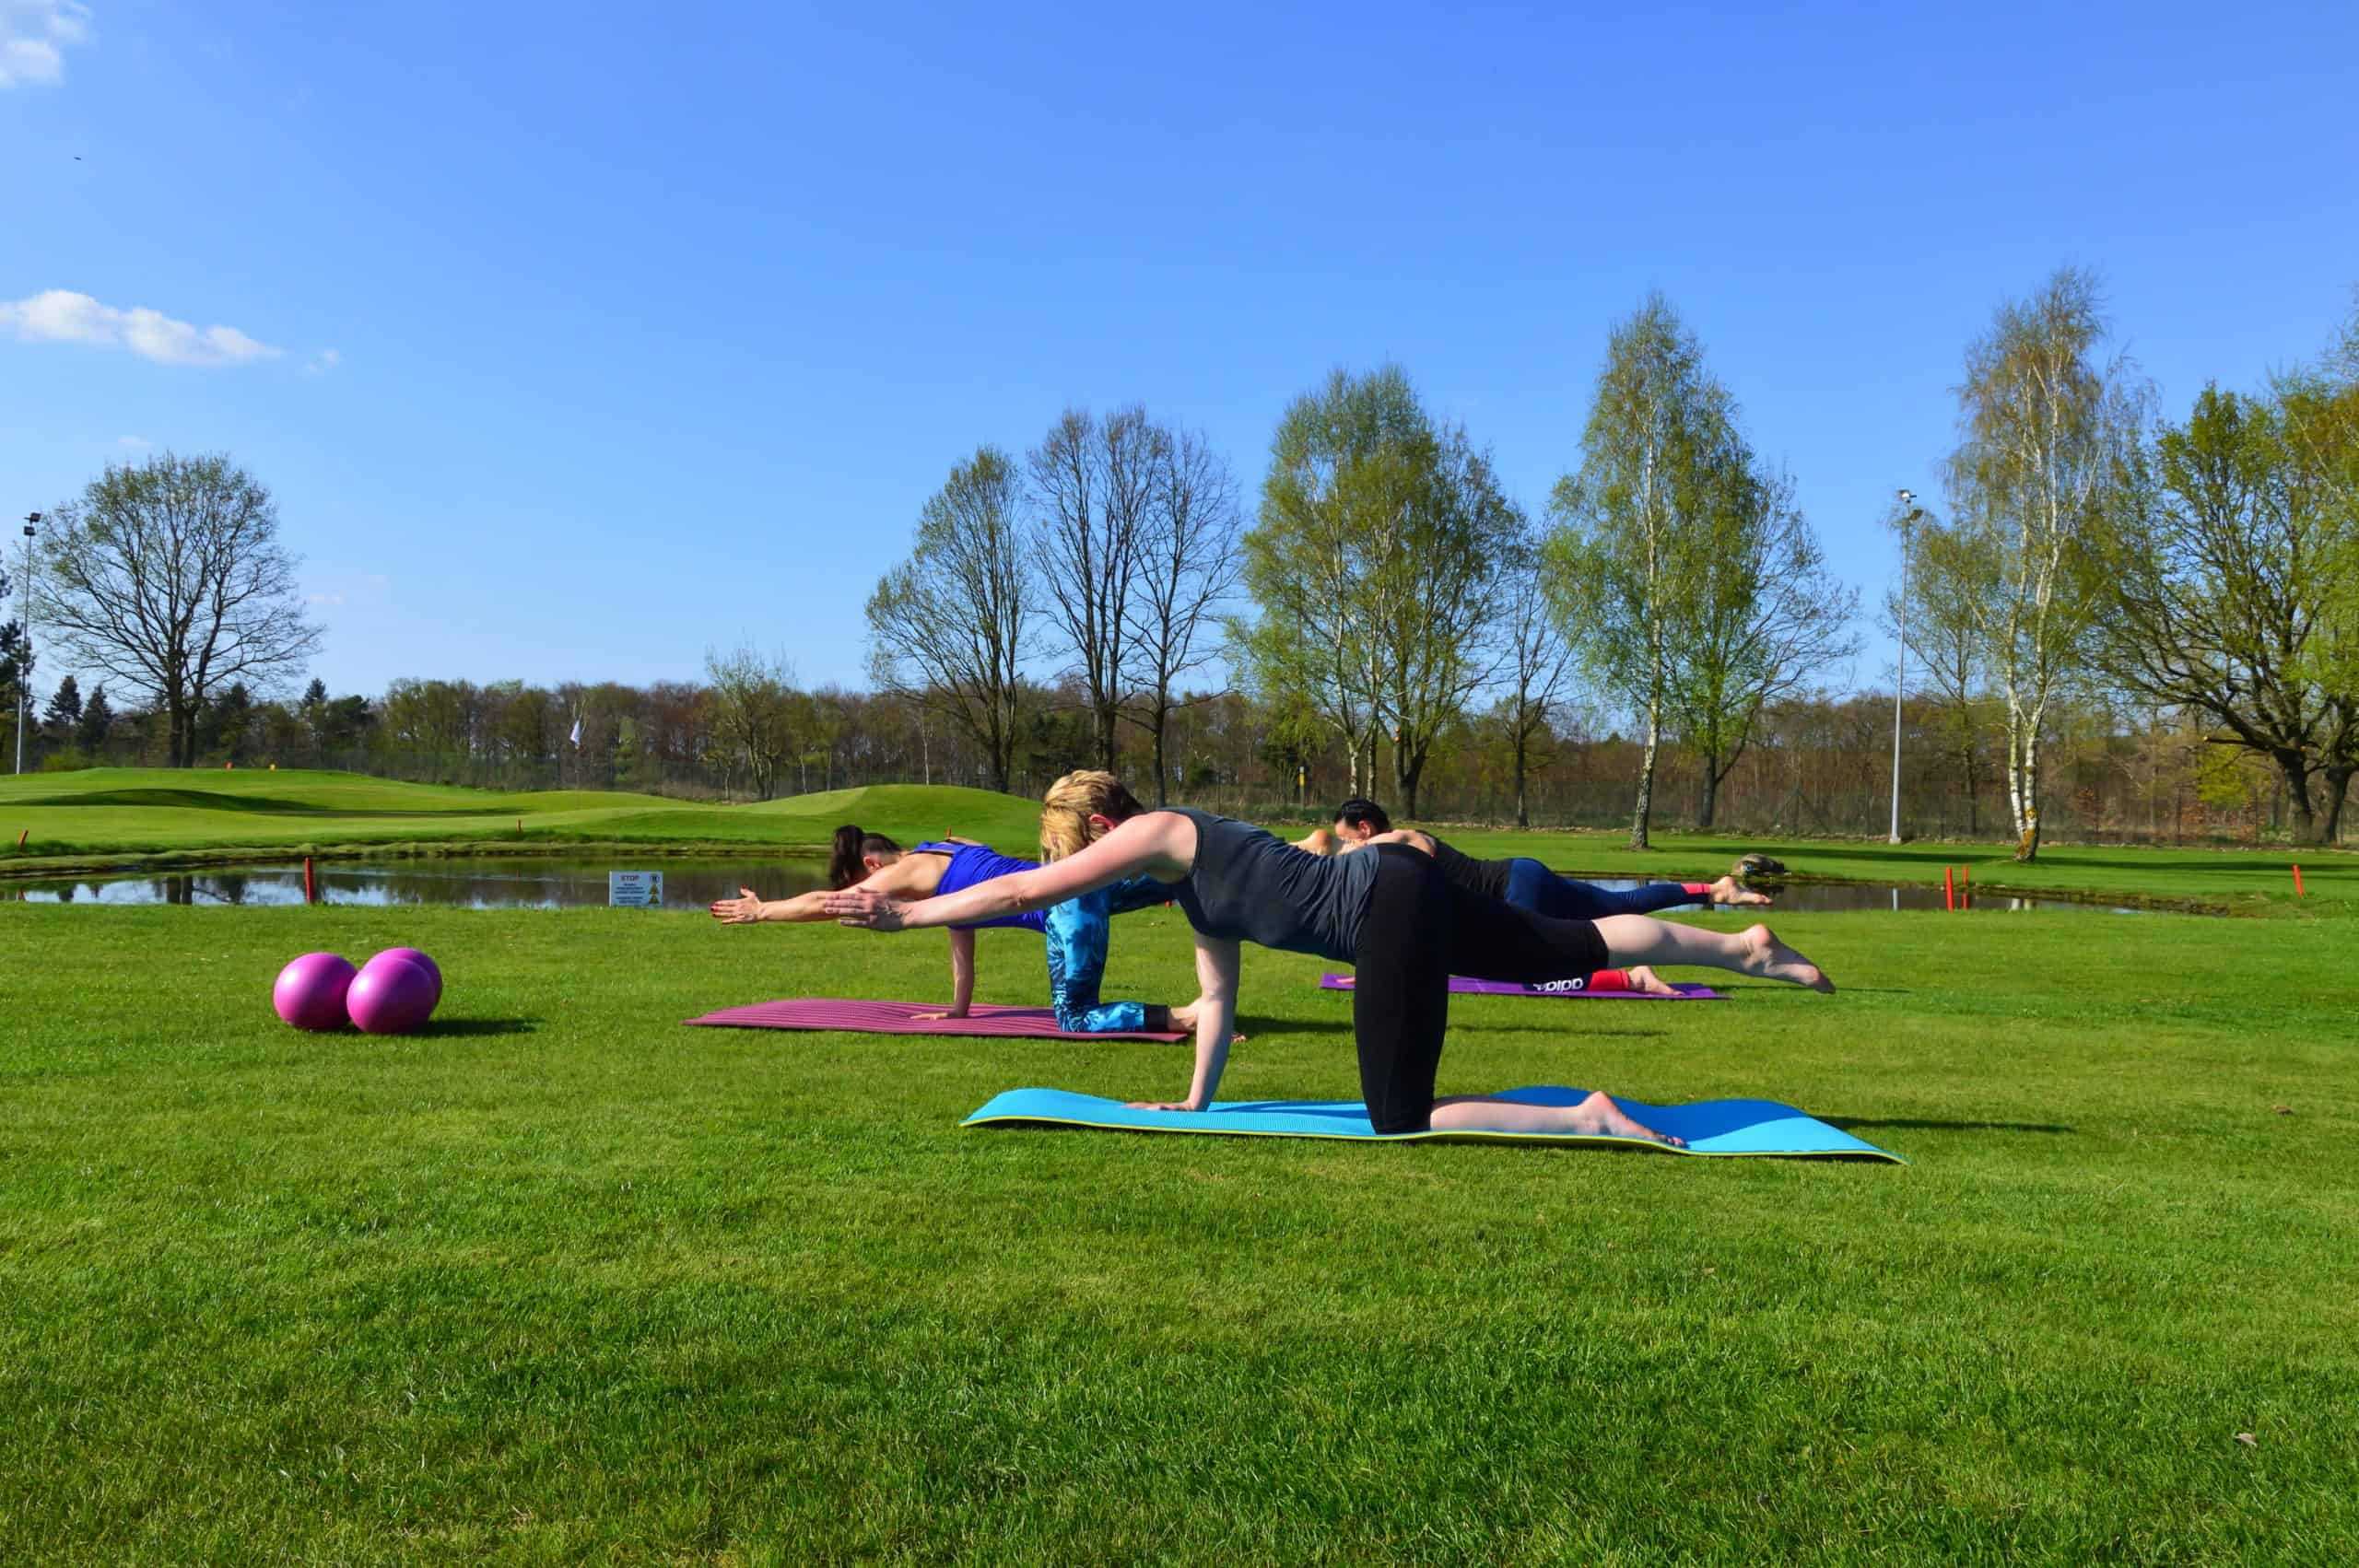 Group pilates in a park